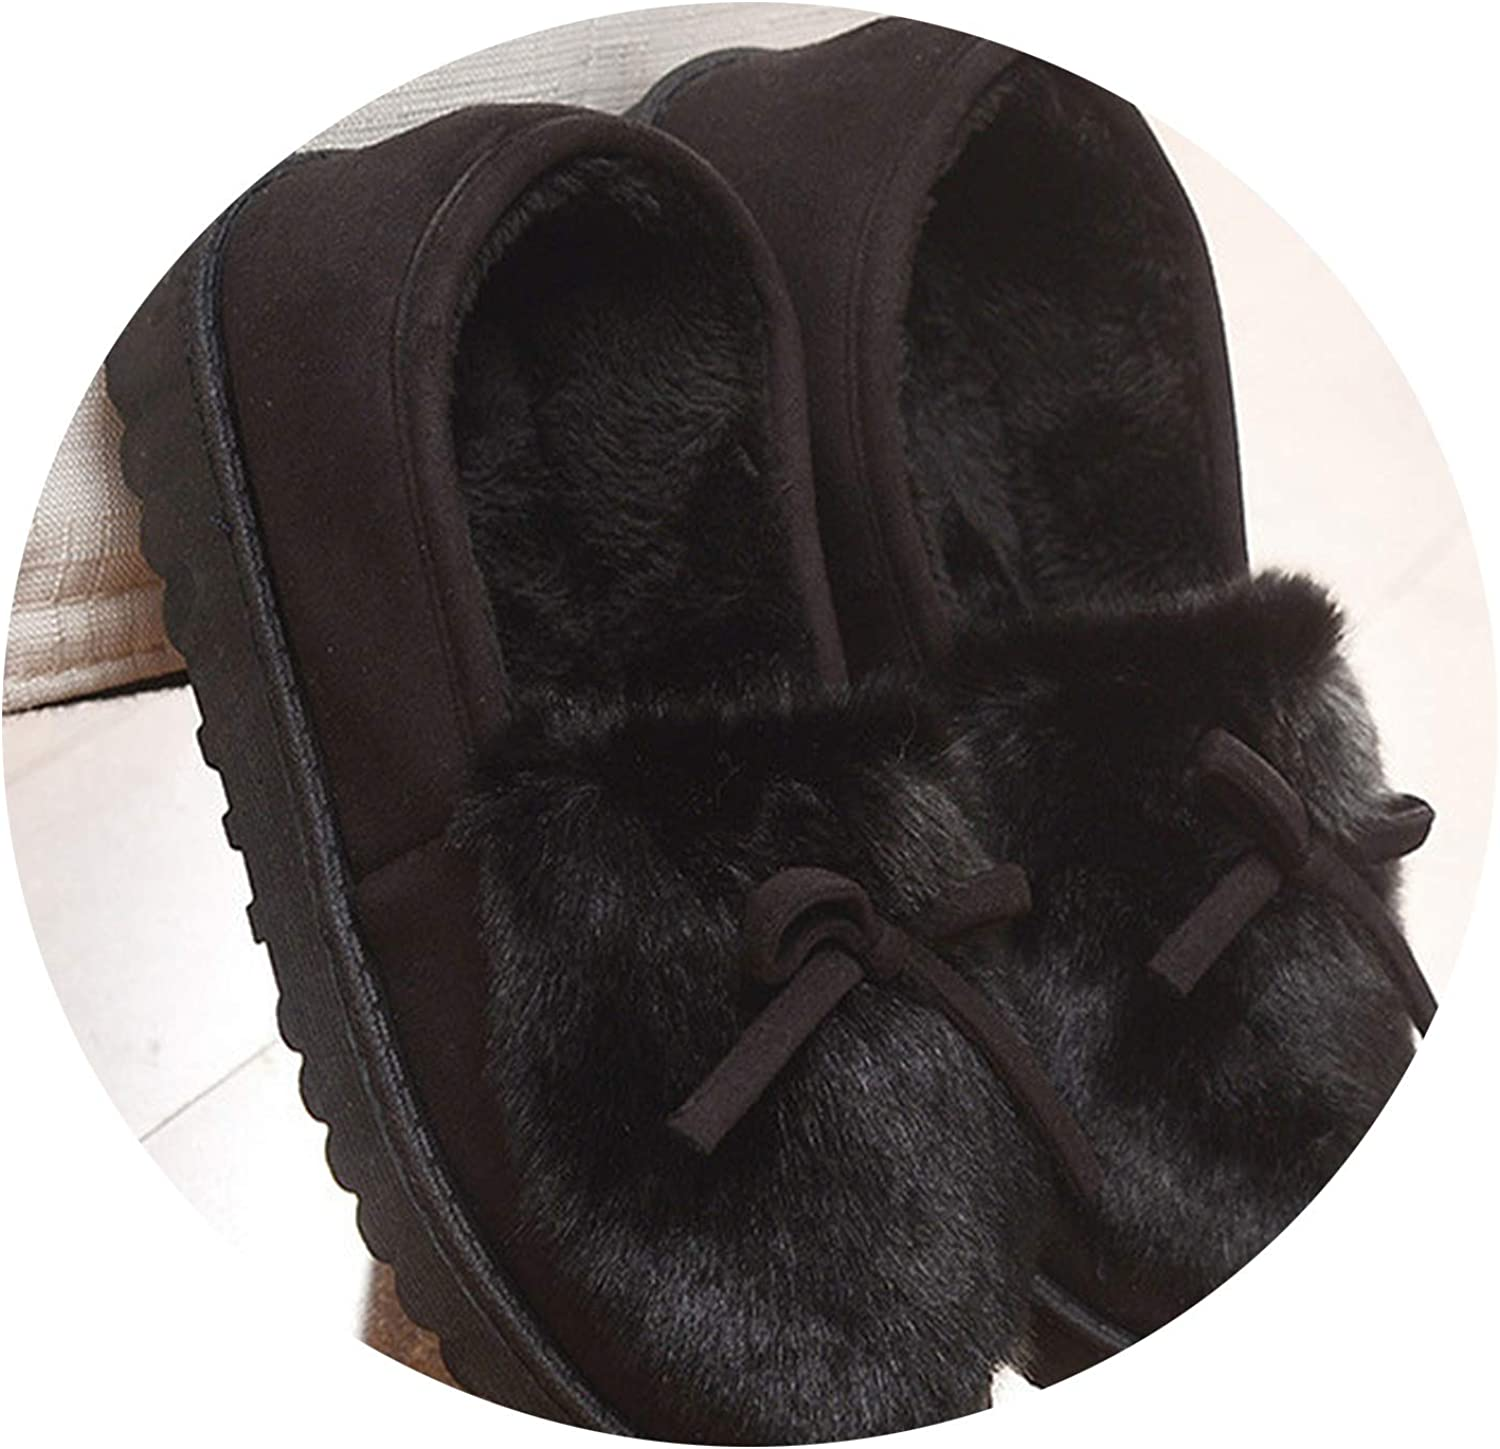 Winter Home Cotton Slippers Warm Non-Slip wear Ladies Slippers Size 35-40